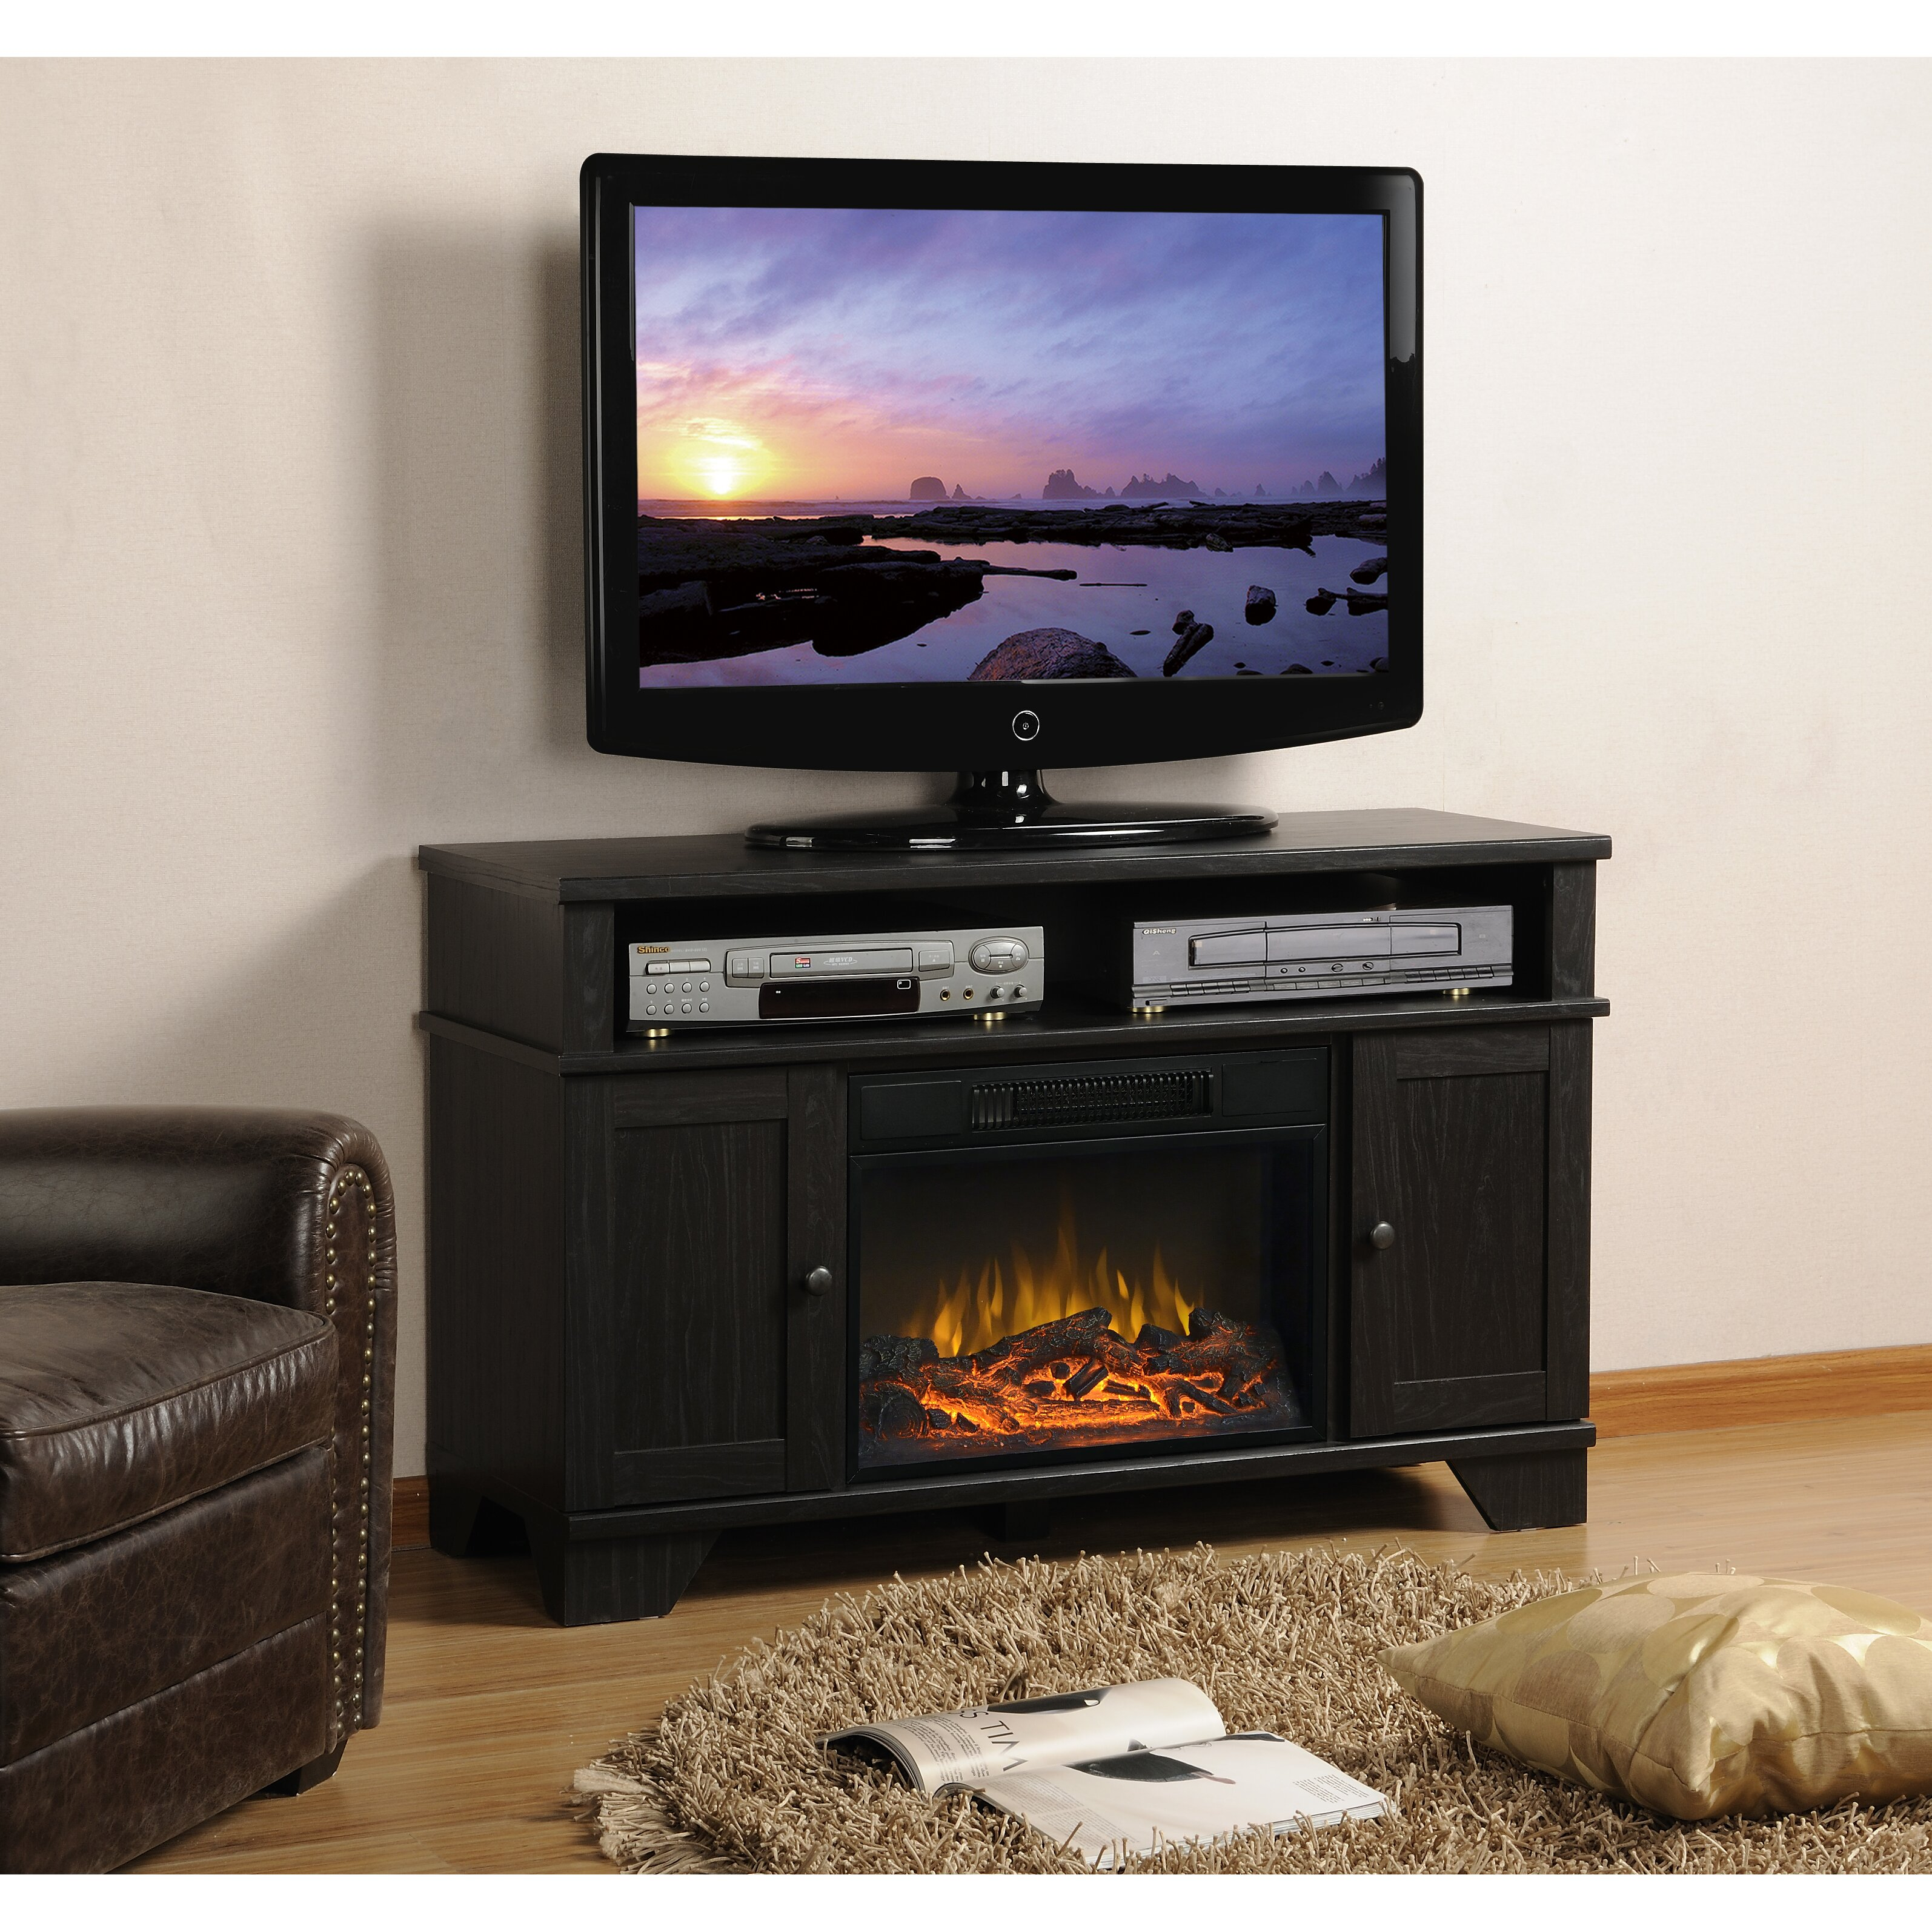 Homestar Hamilton Tv Stand With Electric Fireplace Reviews Wayfair